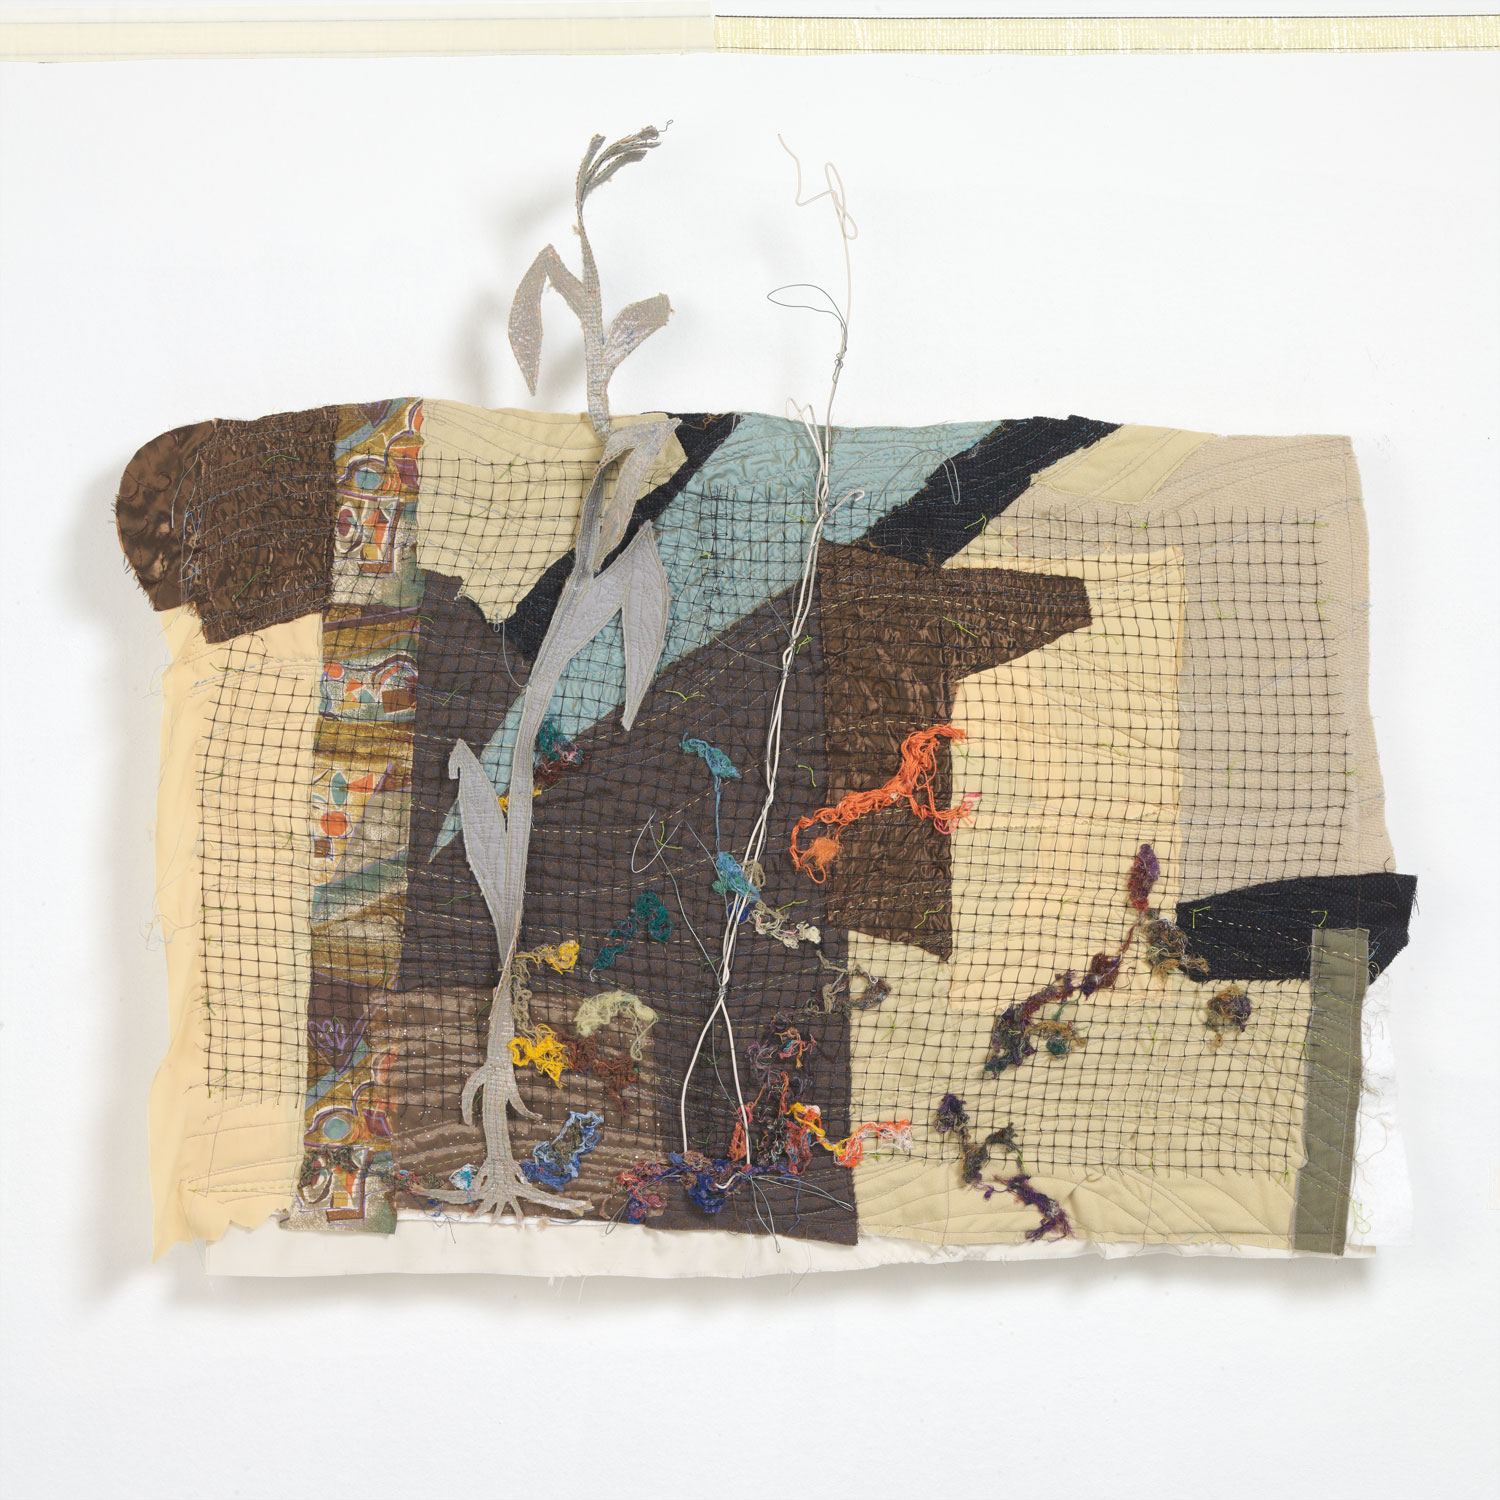 The Iowa flood of 2008 inspired this portrait of resiliance using mixed materials of fiber, wire and plastic mesh with hand and machine stitching.